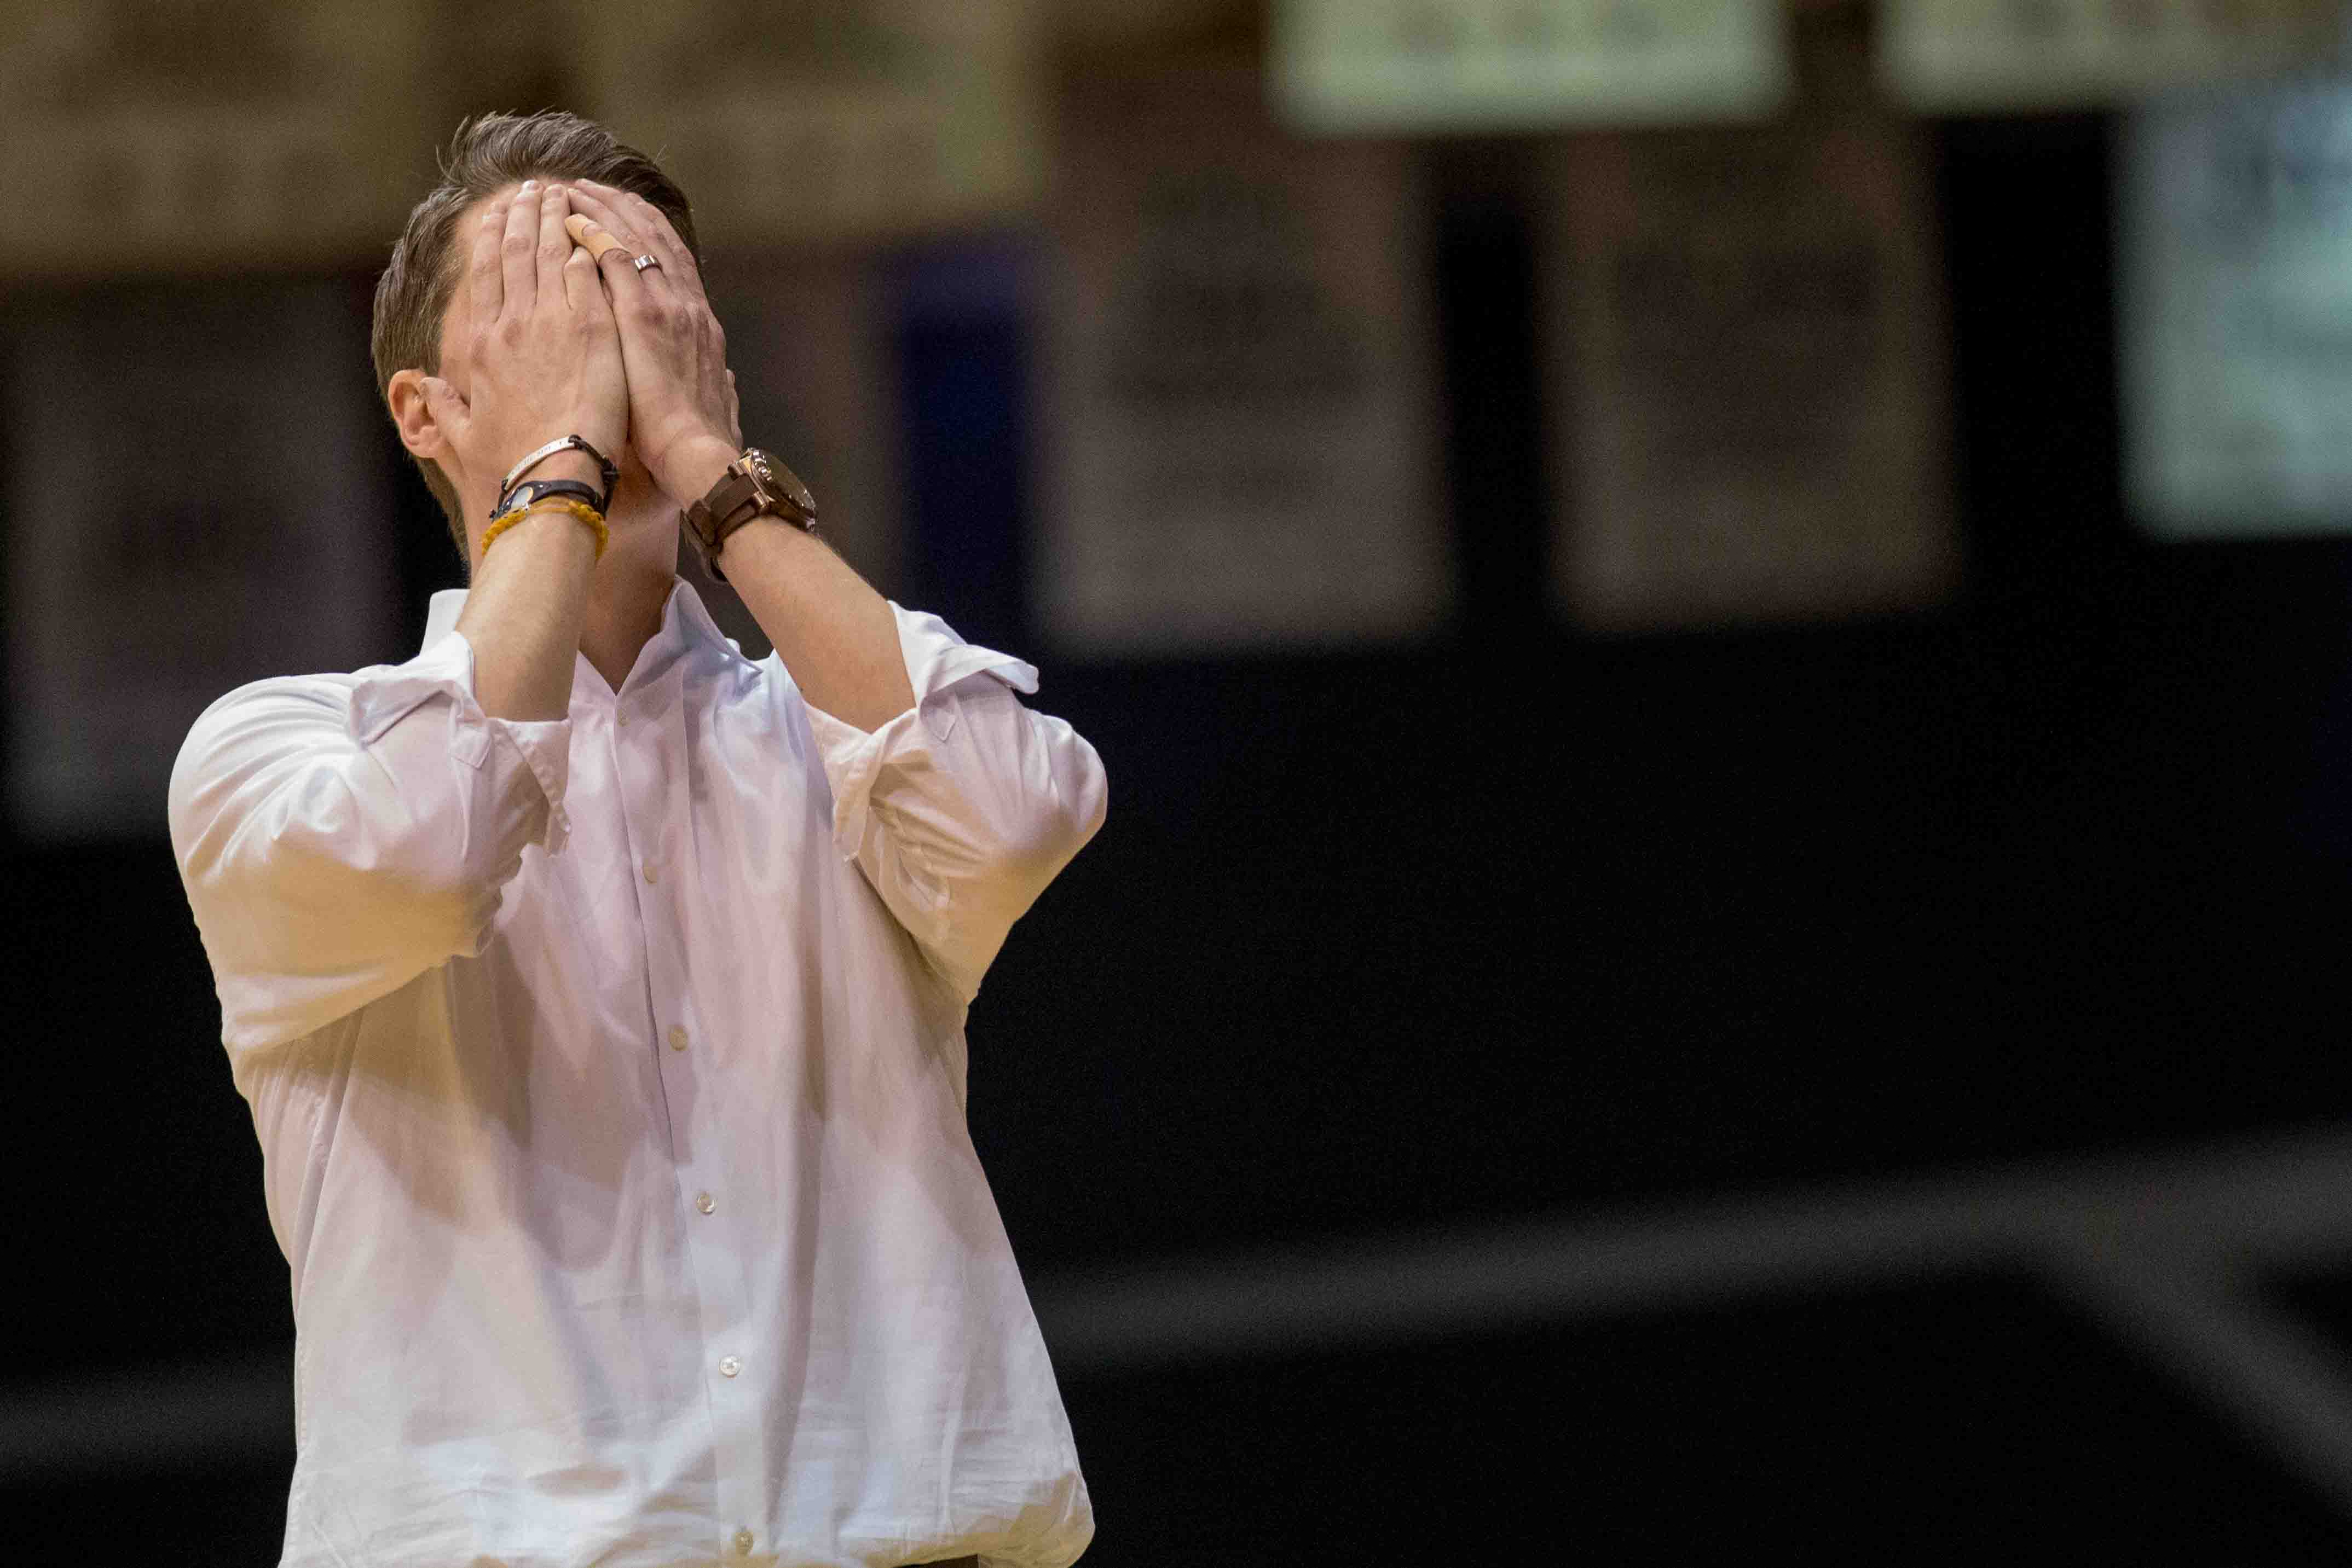 Andy Toole couldn't believe his eyes after RMU shot 65.4 percent from the floor in the first half and just 25 percent in the second, en route to dropping a one point decision to LIU.